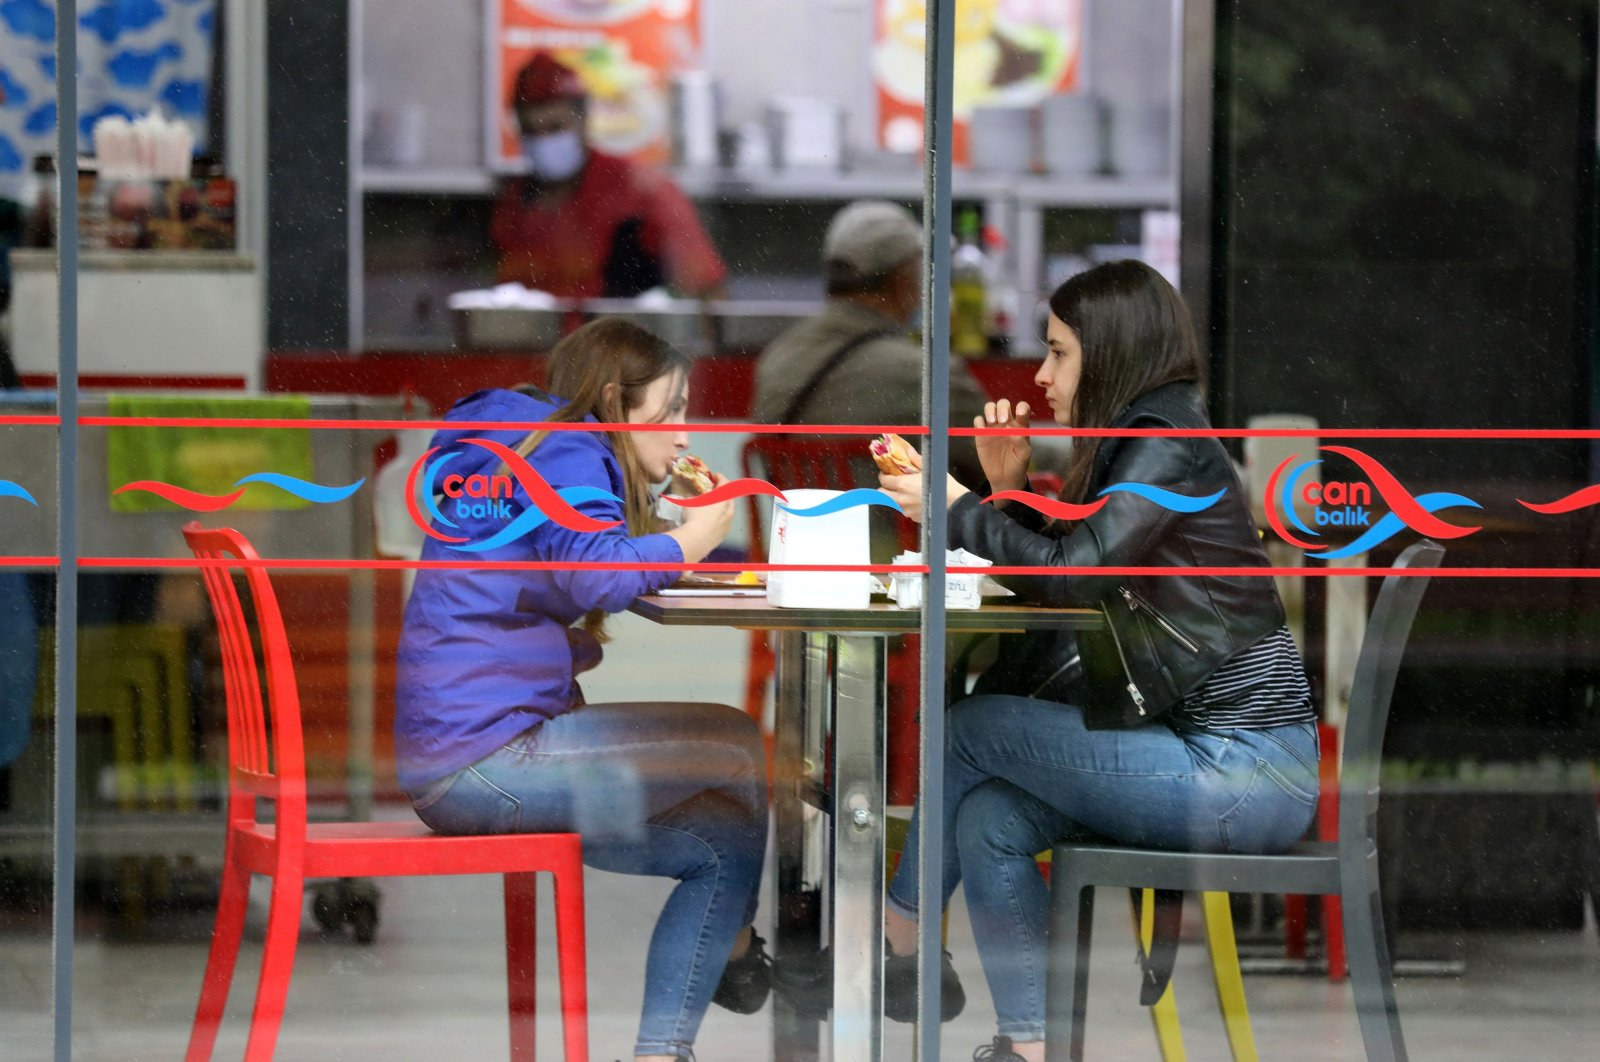 Customers eat at a reopened cafe in Ankara, Turkey, June 2, 2021. (AFP Photo)